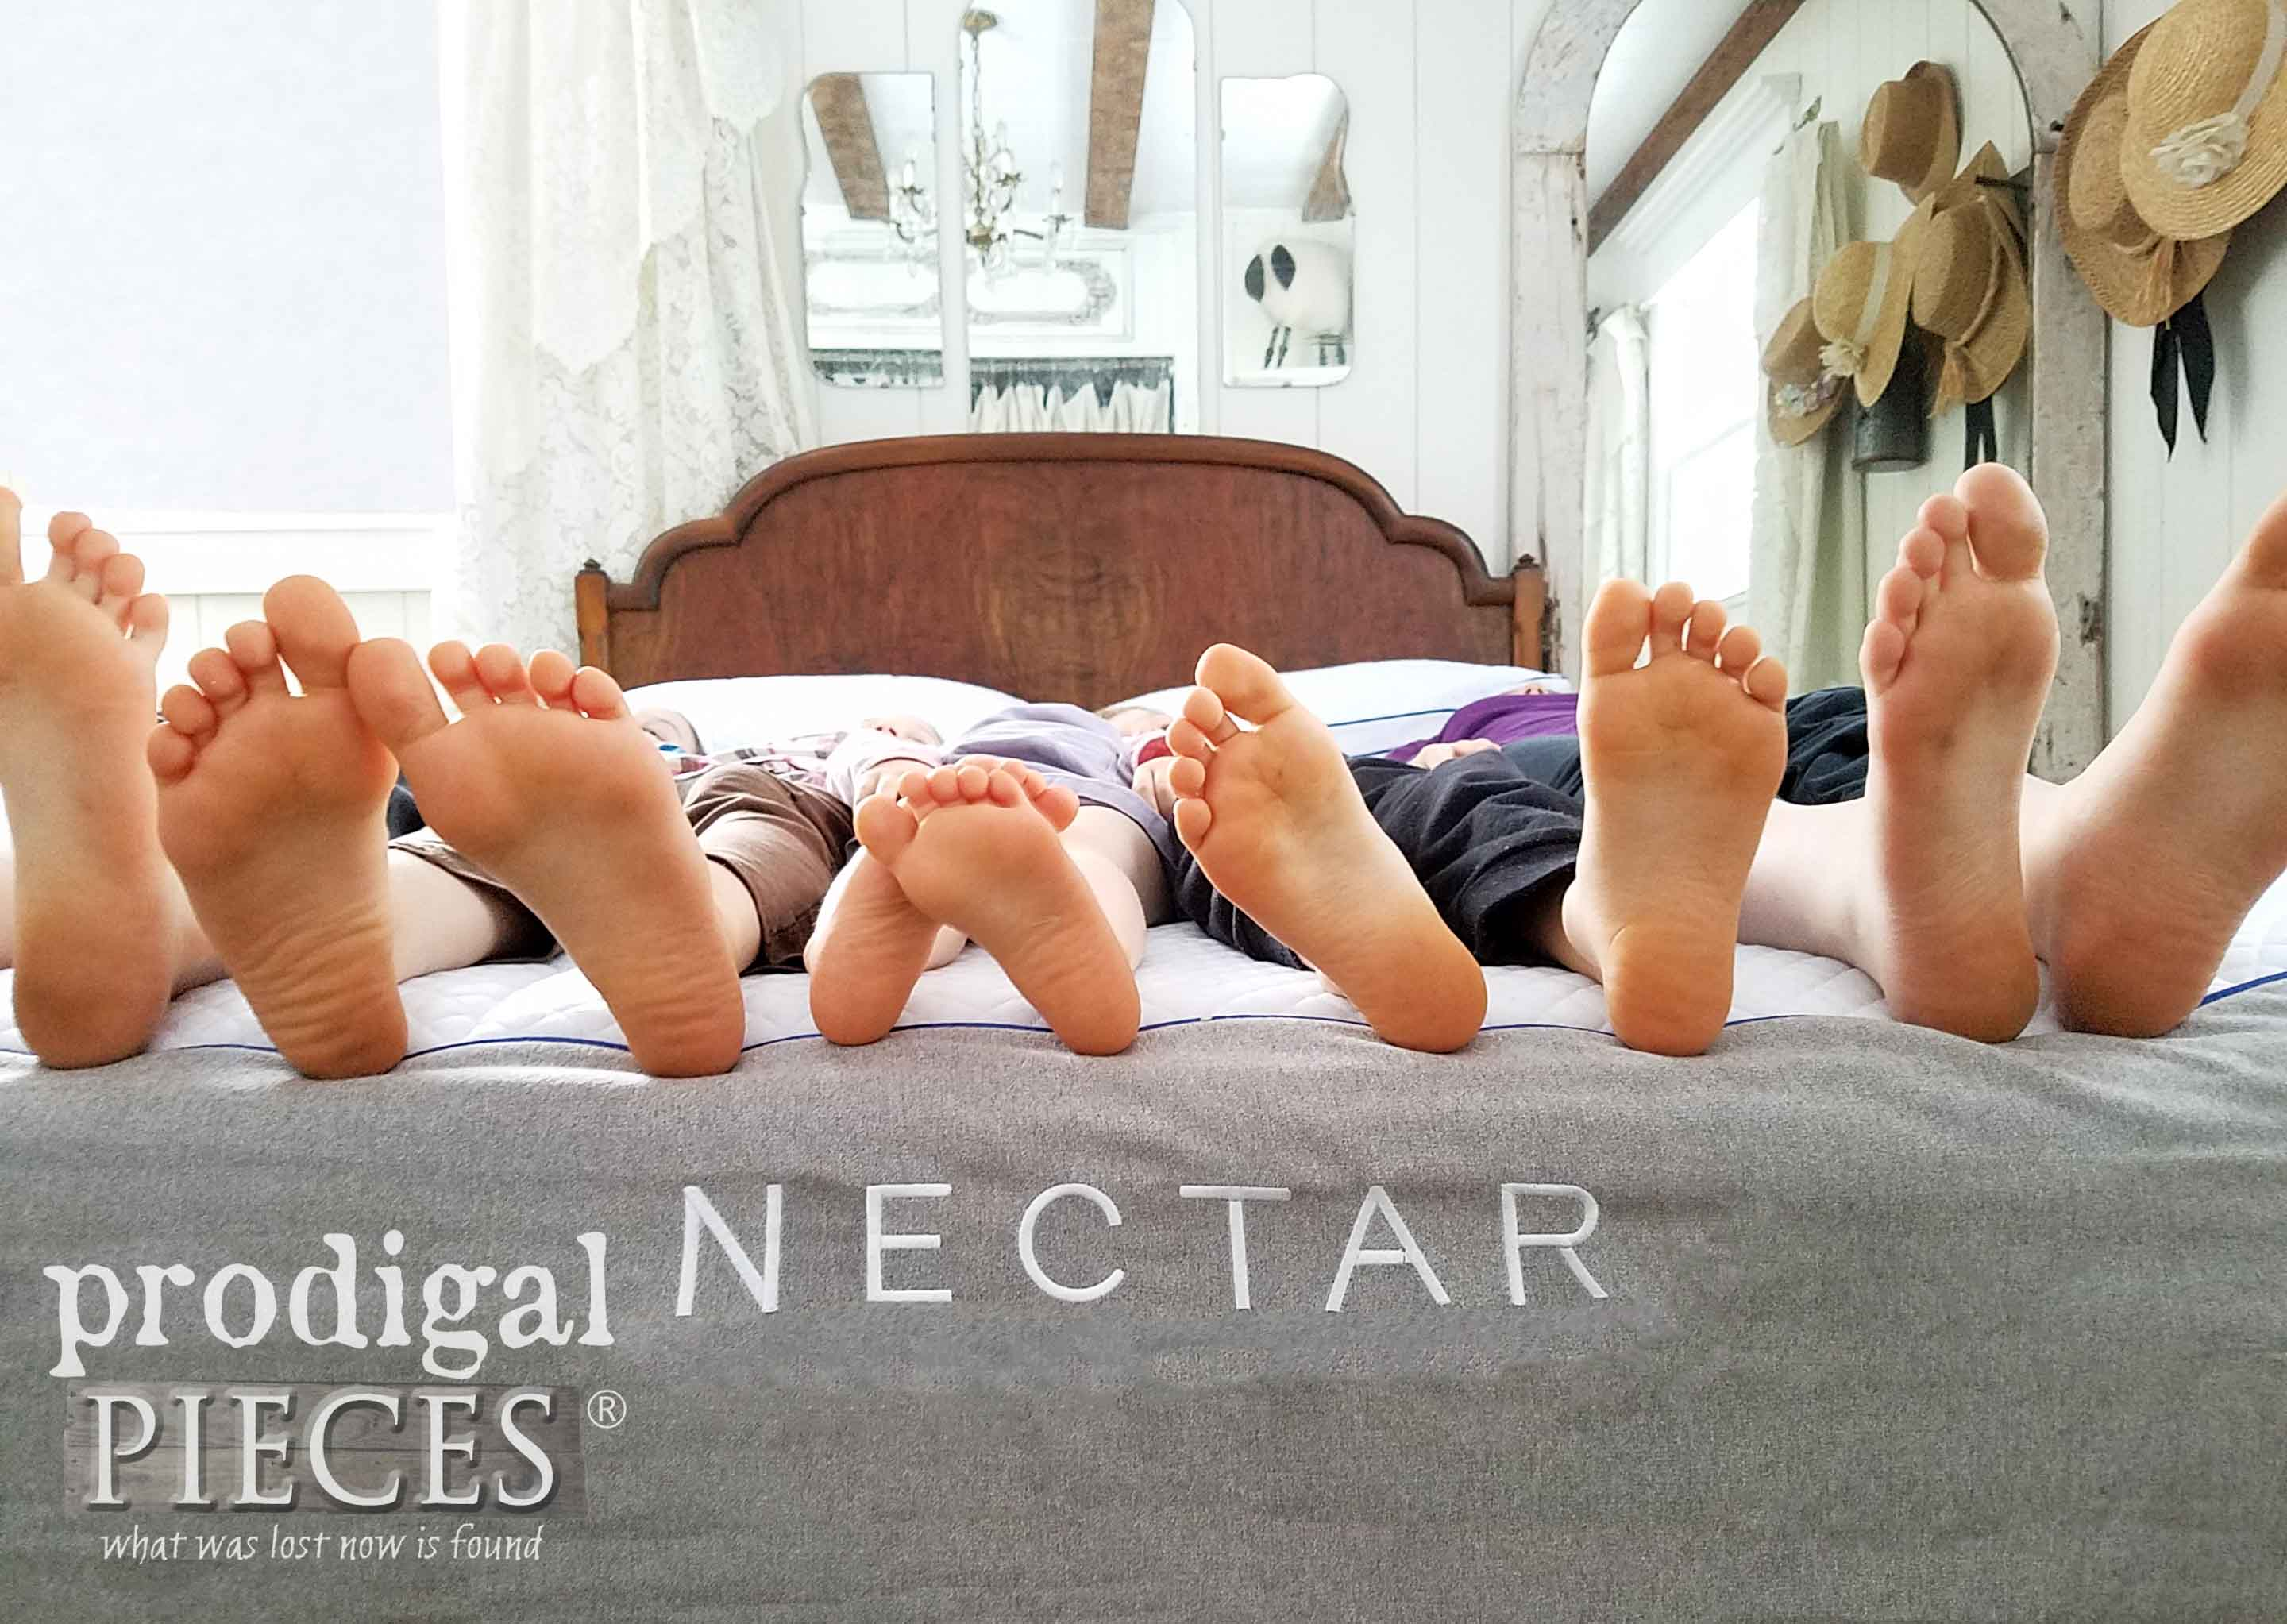 Haynes Family Kids Giving a NECTAR mattress a test run by Prodigal Pieces | prodigalpieces.com